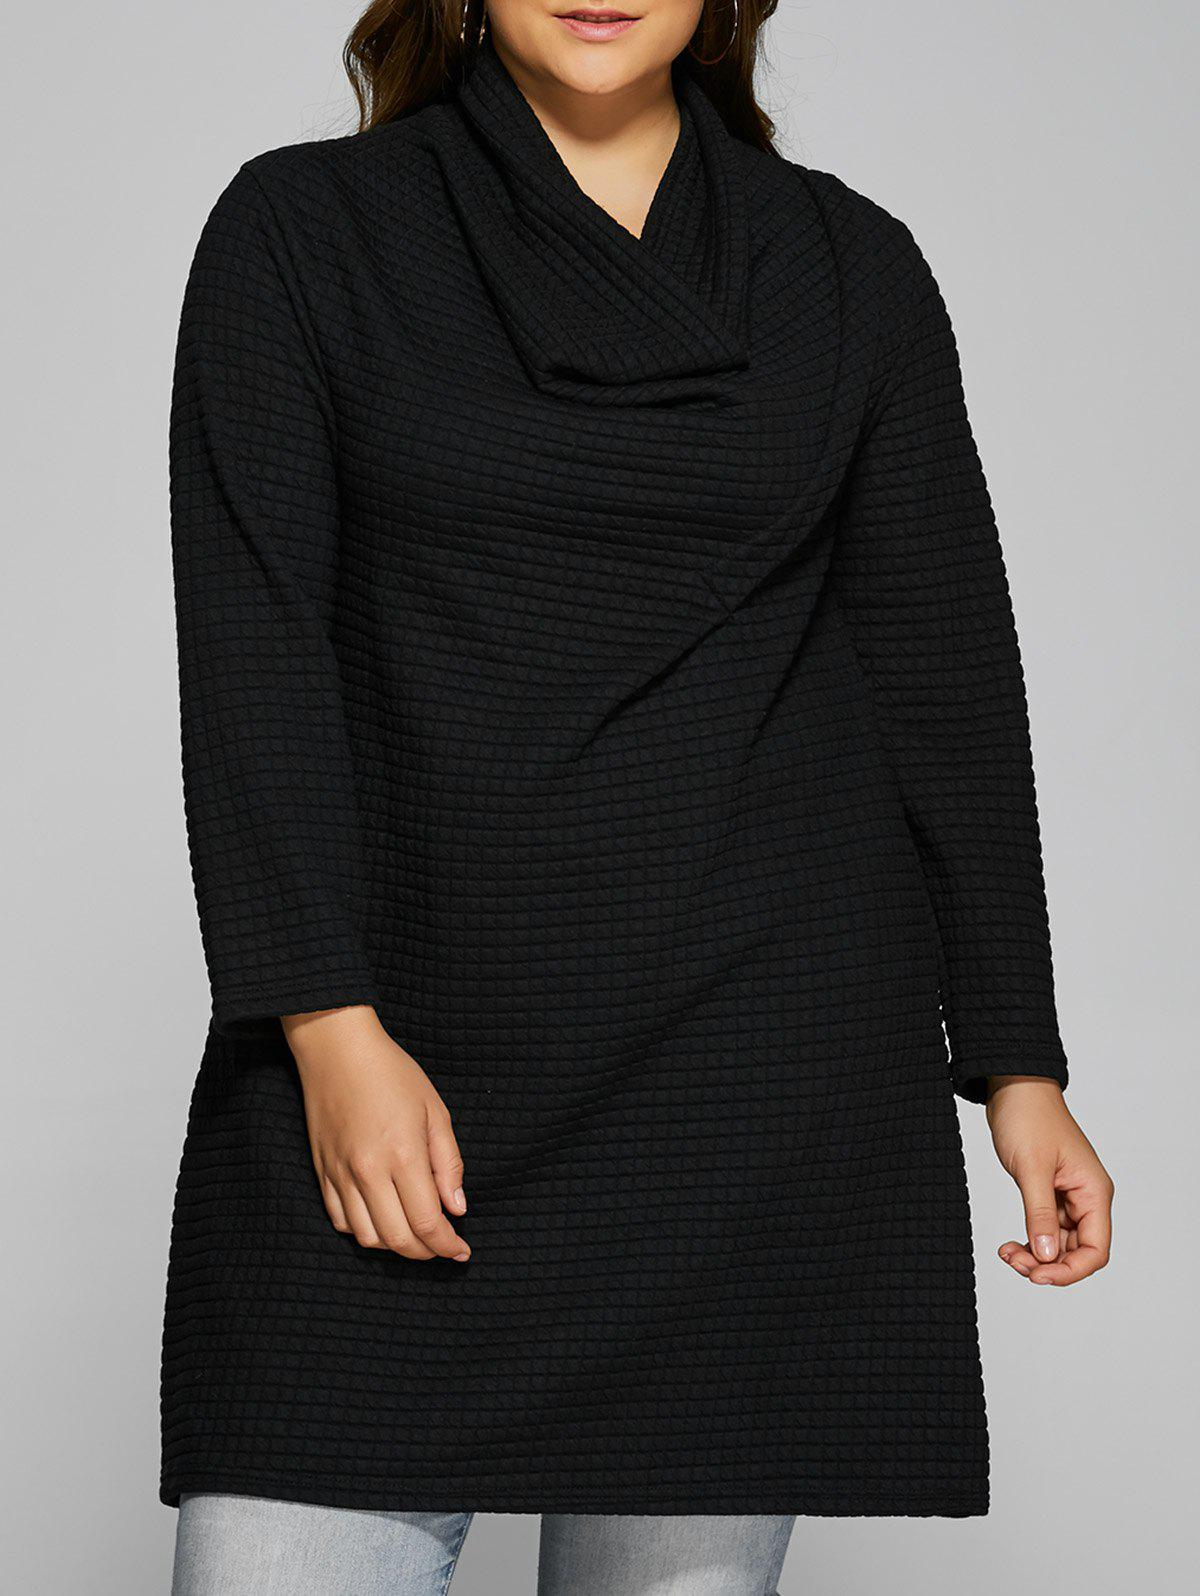 Plus Size Cowl Neck Textured Blouse bar iii black women s size medium m textured embossed cropped top blouse $49